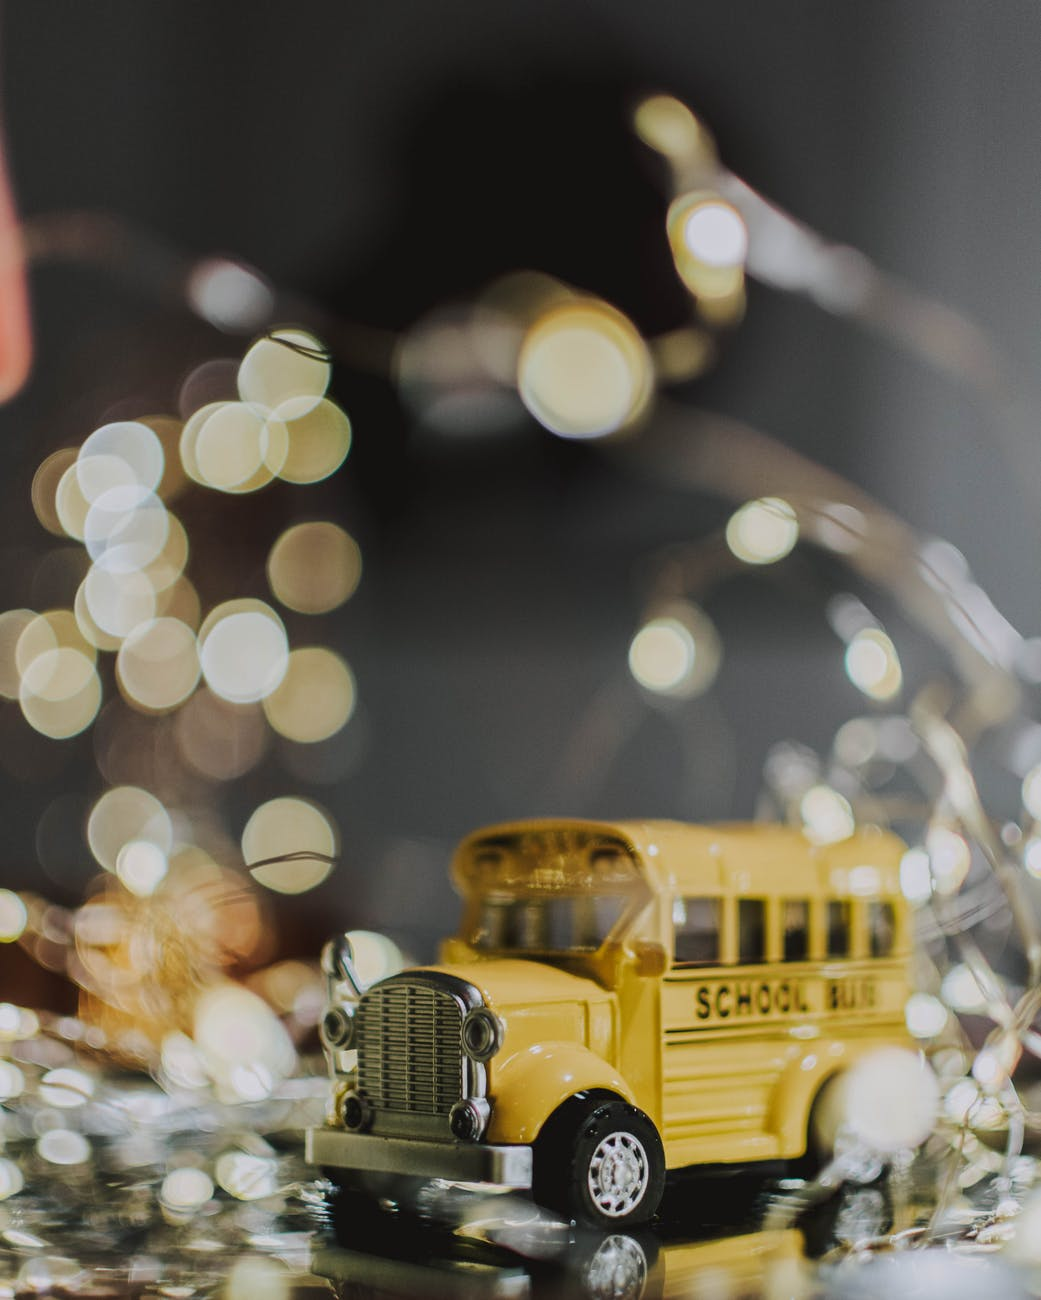 yellow school bus toy with light reflections